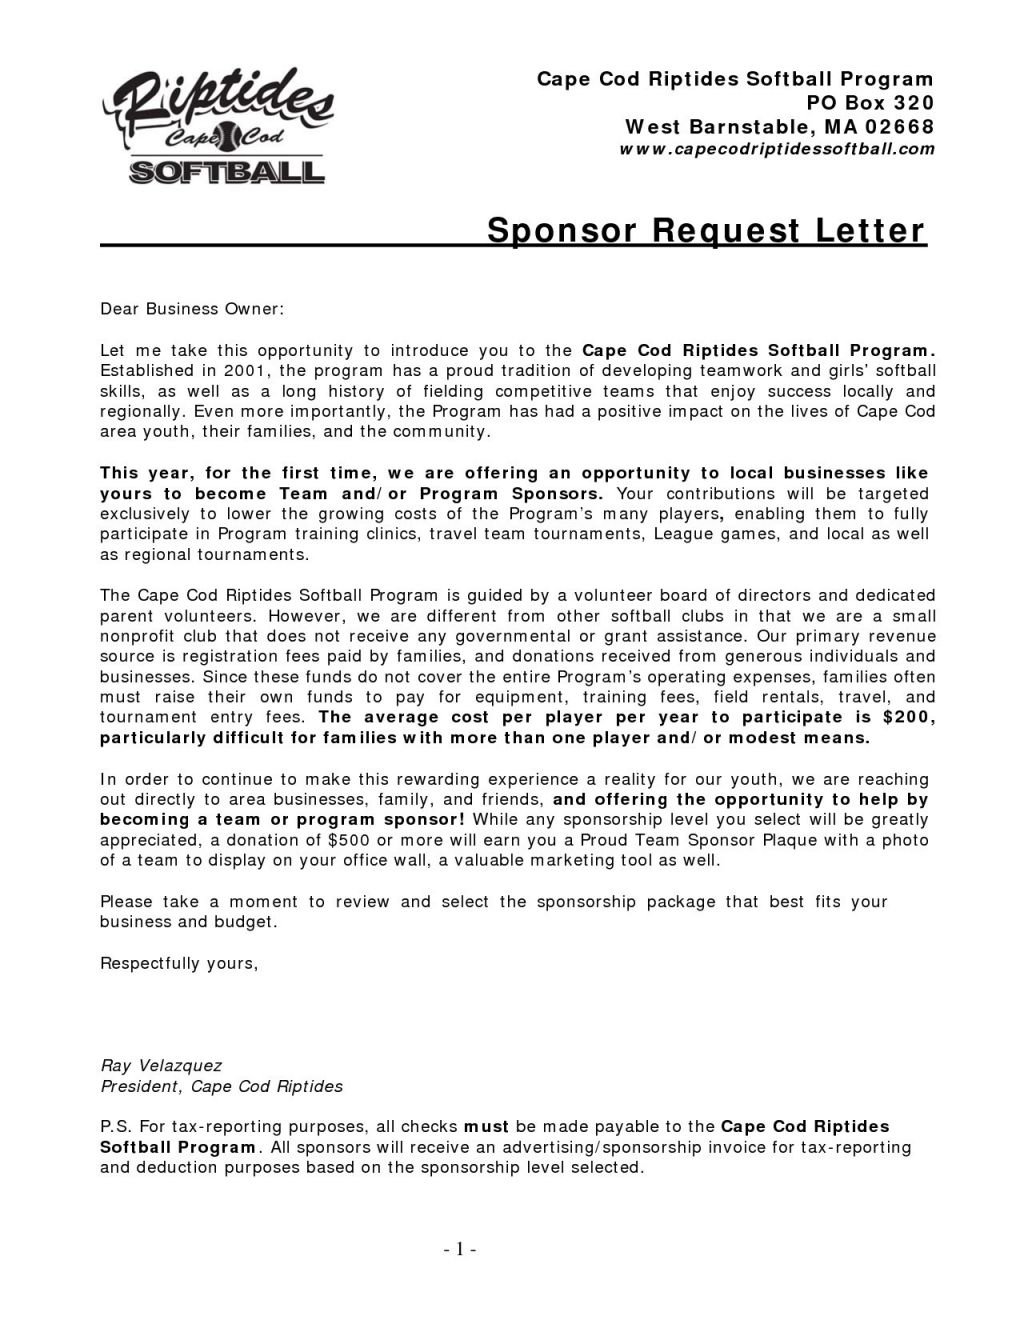 Softball Sponsorship Letter Template - Popular Letter asking for Sponsors Nh84 – Documentaries for Change